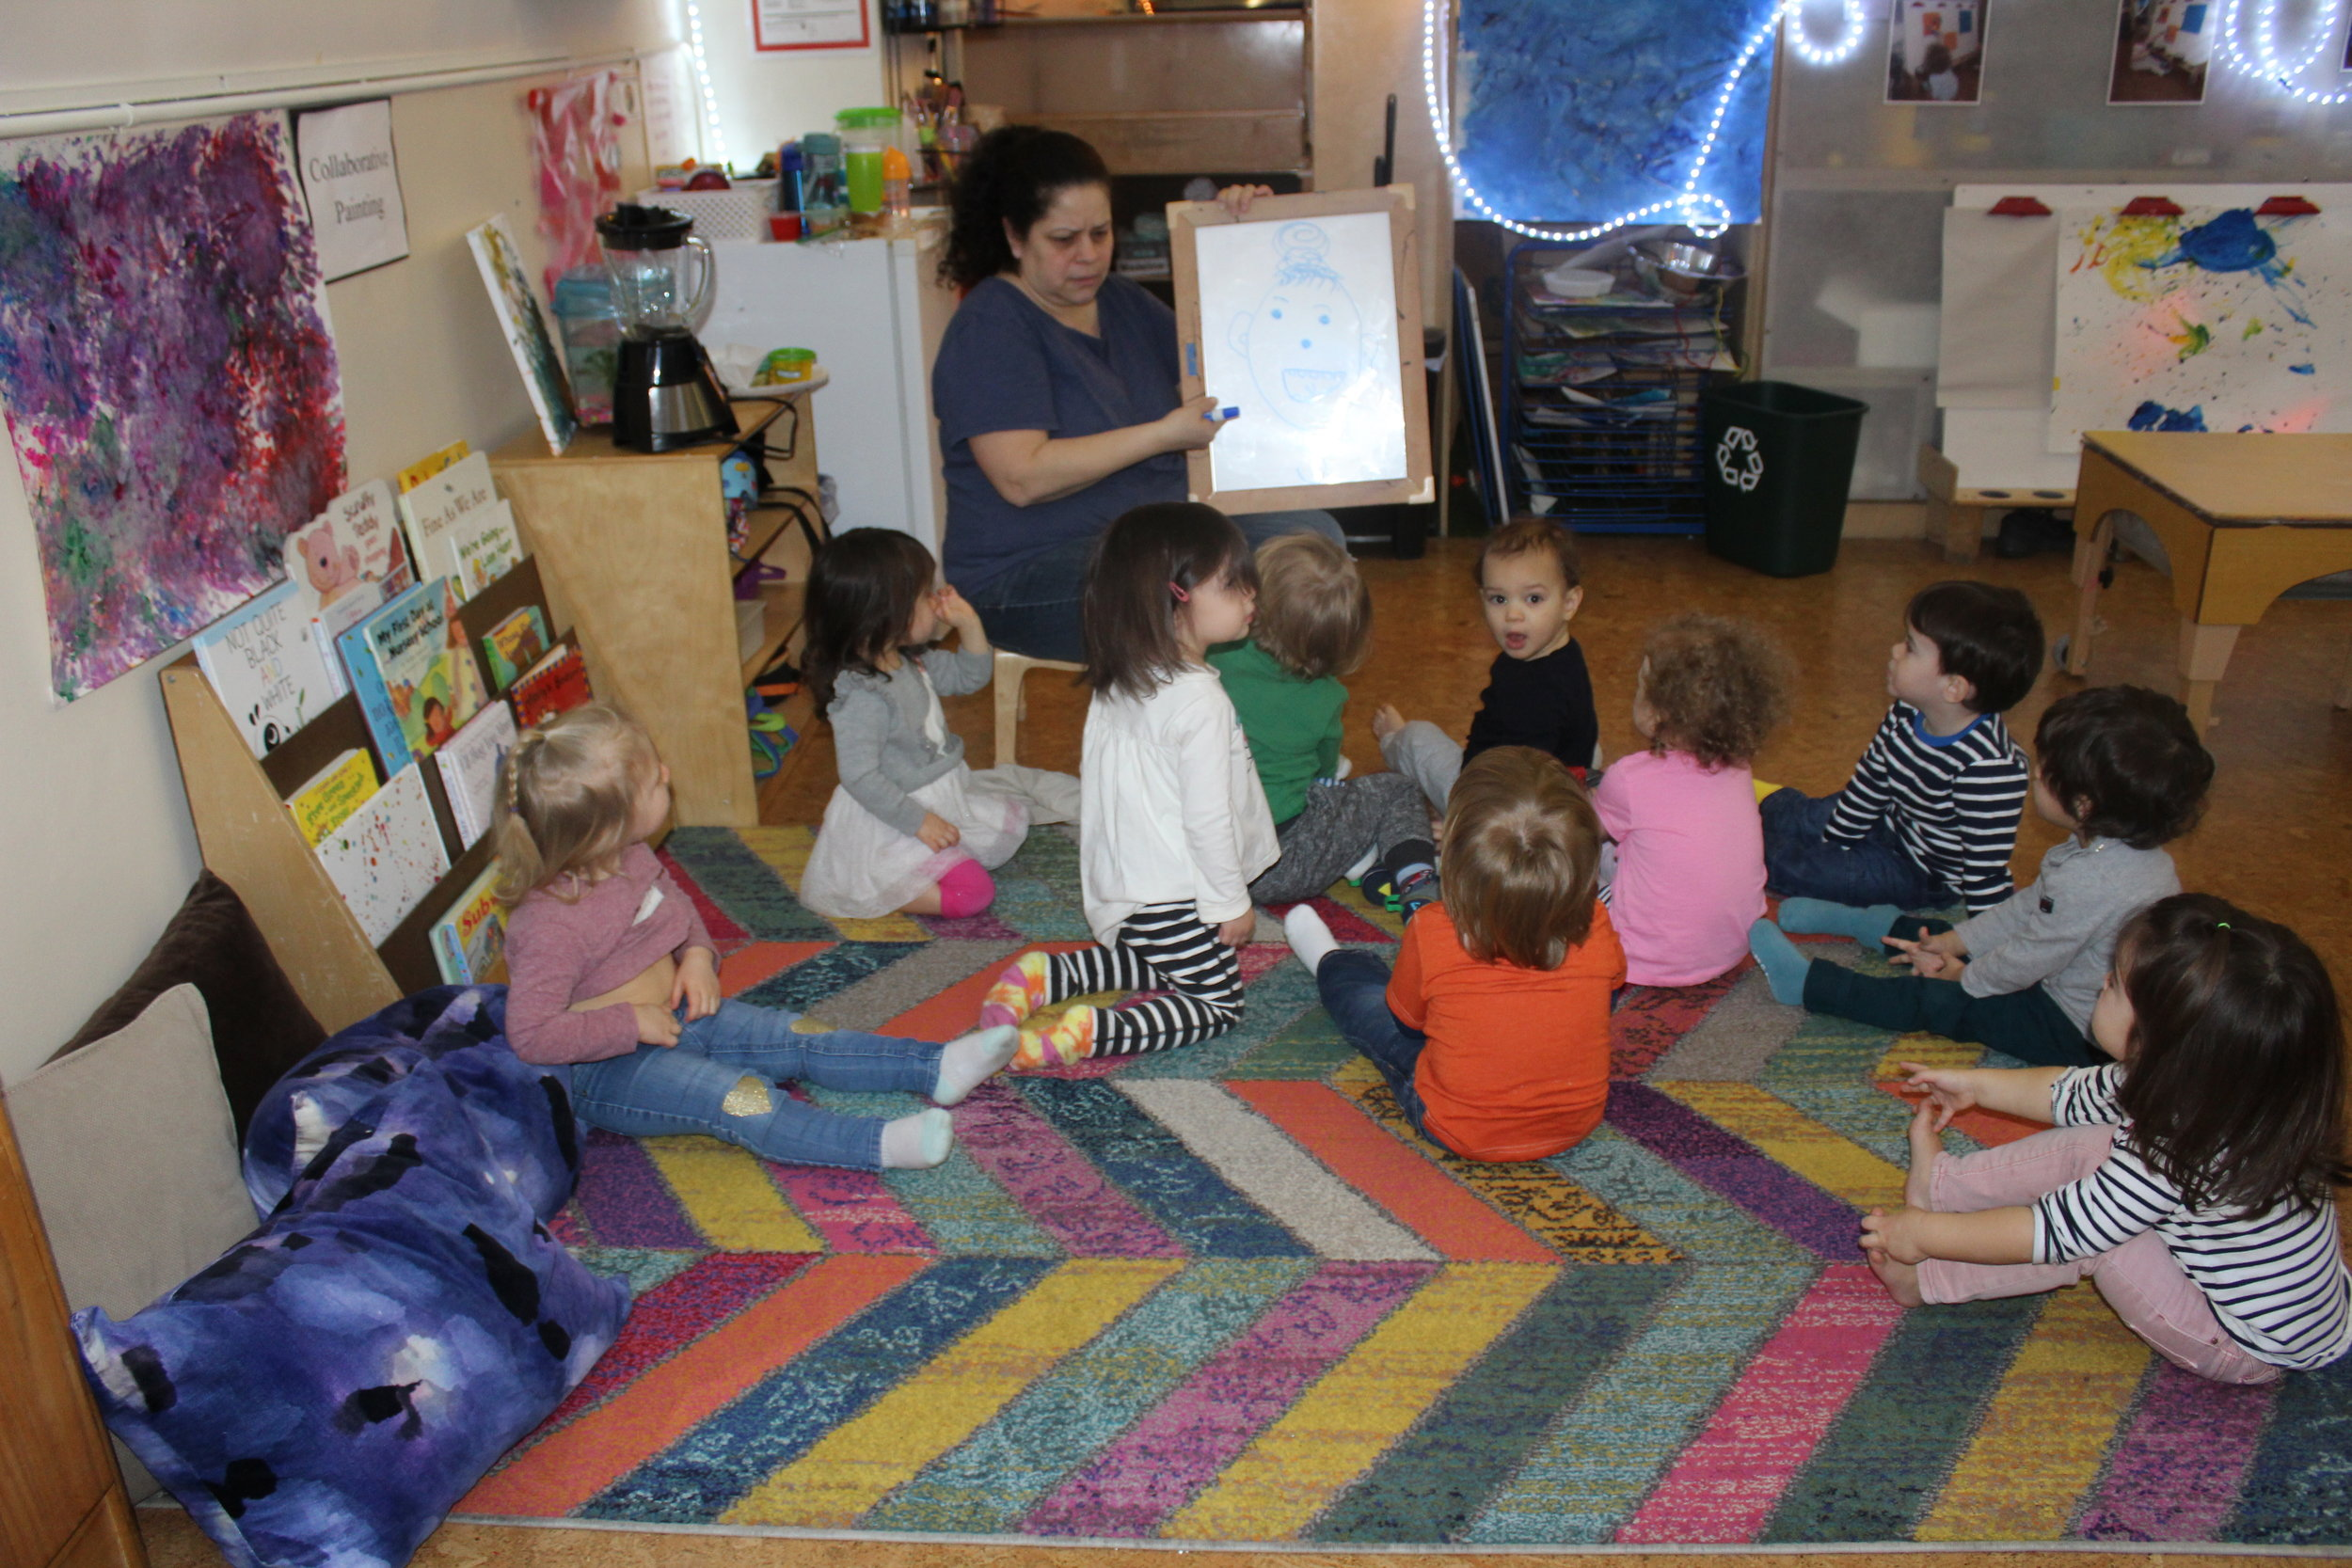 During circle time, Ms. Janet drew a self-portrait of Ms. Sandra. She asked the children, What is Sandra missing? All the children participated and articulated the different features until the self-portrait was completed. I don't see a resemblance; however, the children identified, recognized, and articulated the facial features.